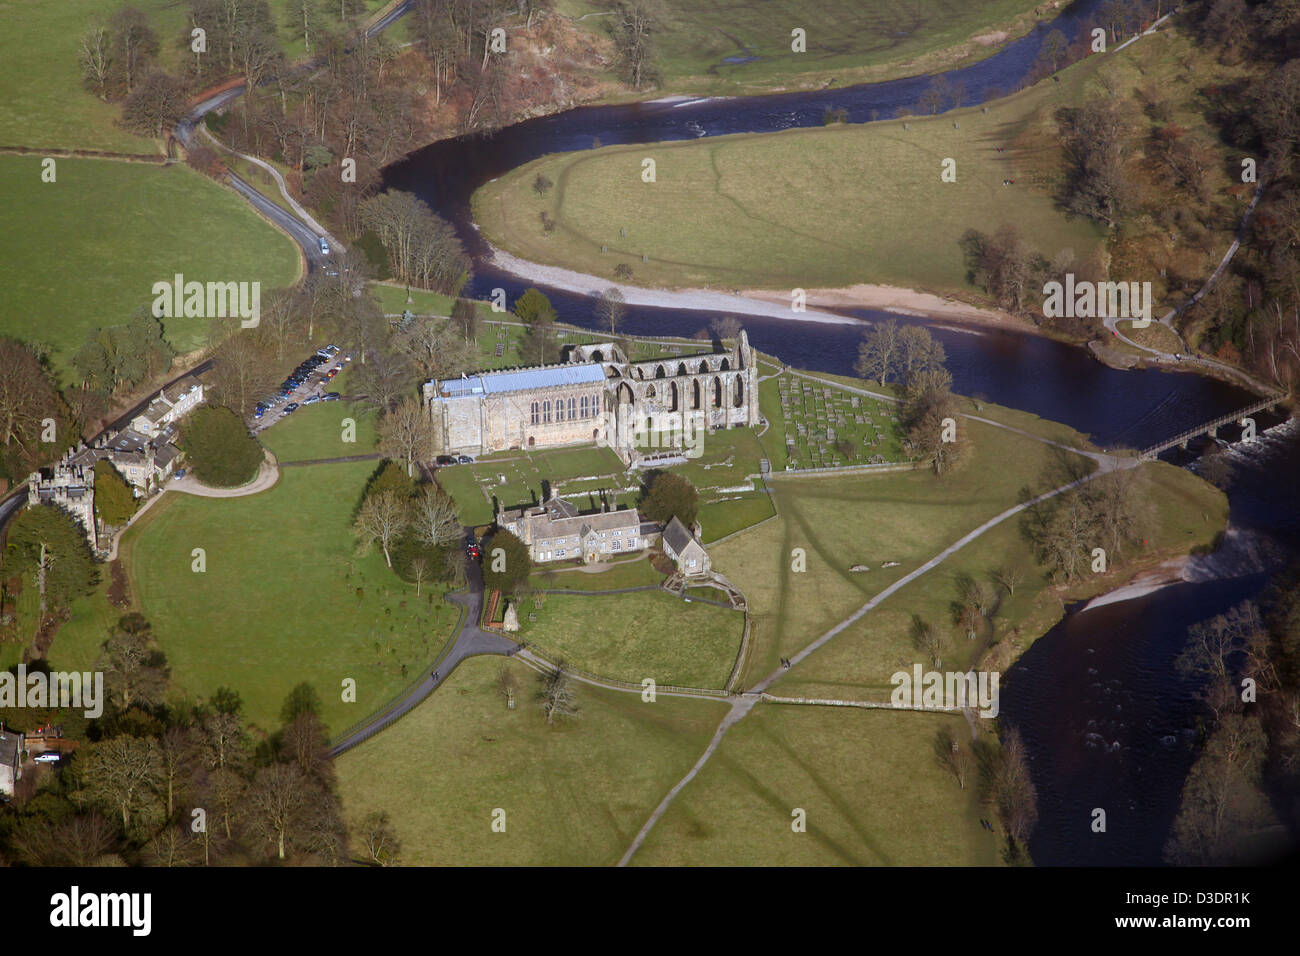 aerial view of Bolton Priory within the Bolton Abbey estate in North Yorkshire - Stock Image